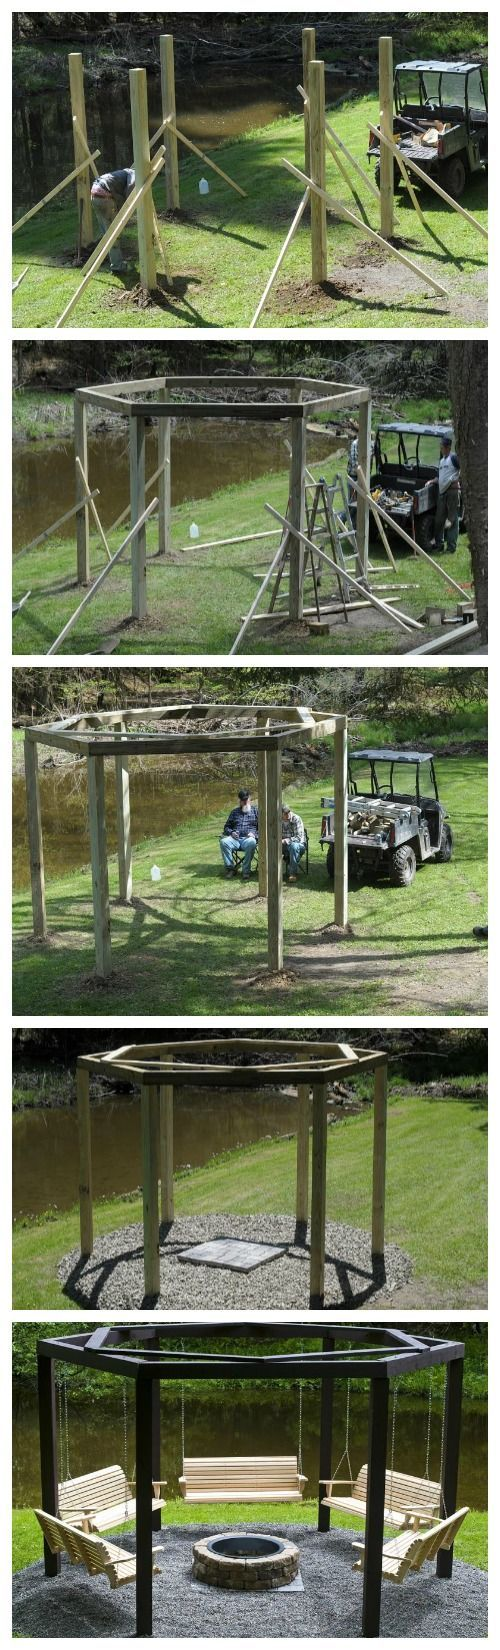 *DIY backyard swing circle...LOVE THIS! I think http://gardeningforyou.info/diy-backyard-swing-circle-love-this-i-think-karen-darling-space-amp-stuff-blog-harney-would-love-this-too/ #gardening #flowers